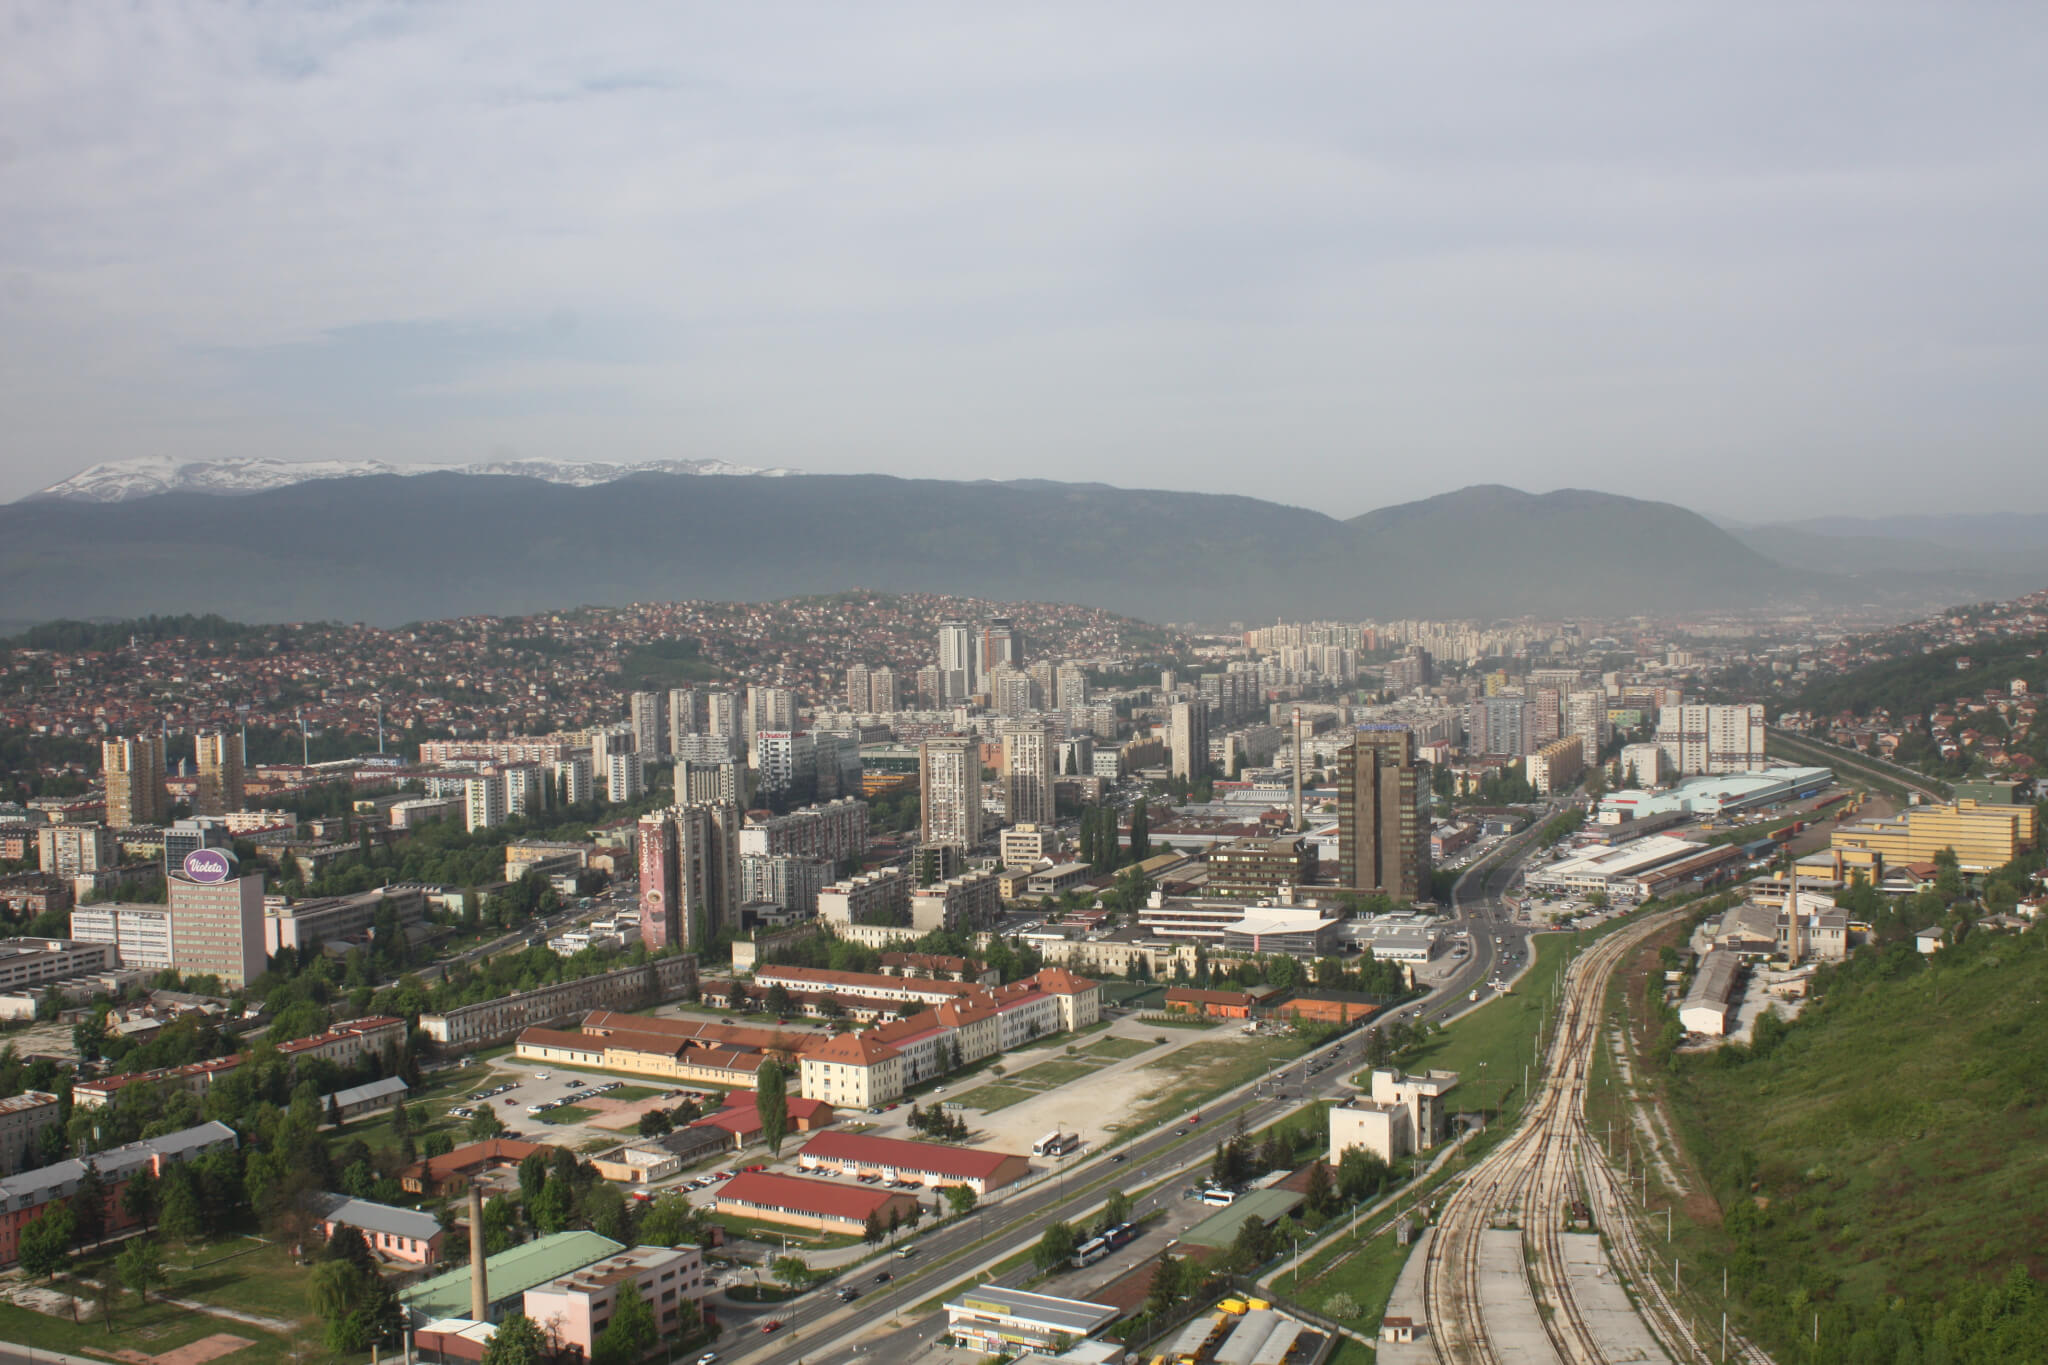 Sarajevo seen from the Avaz Twist Tower